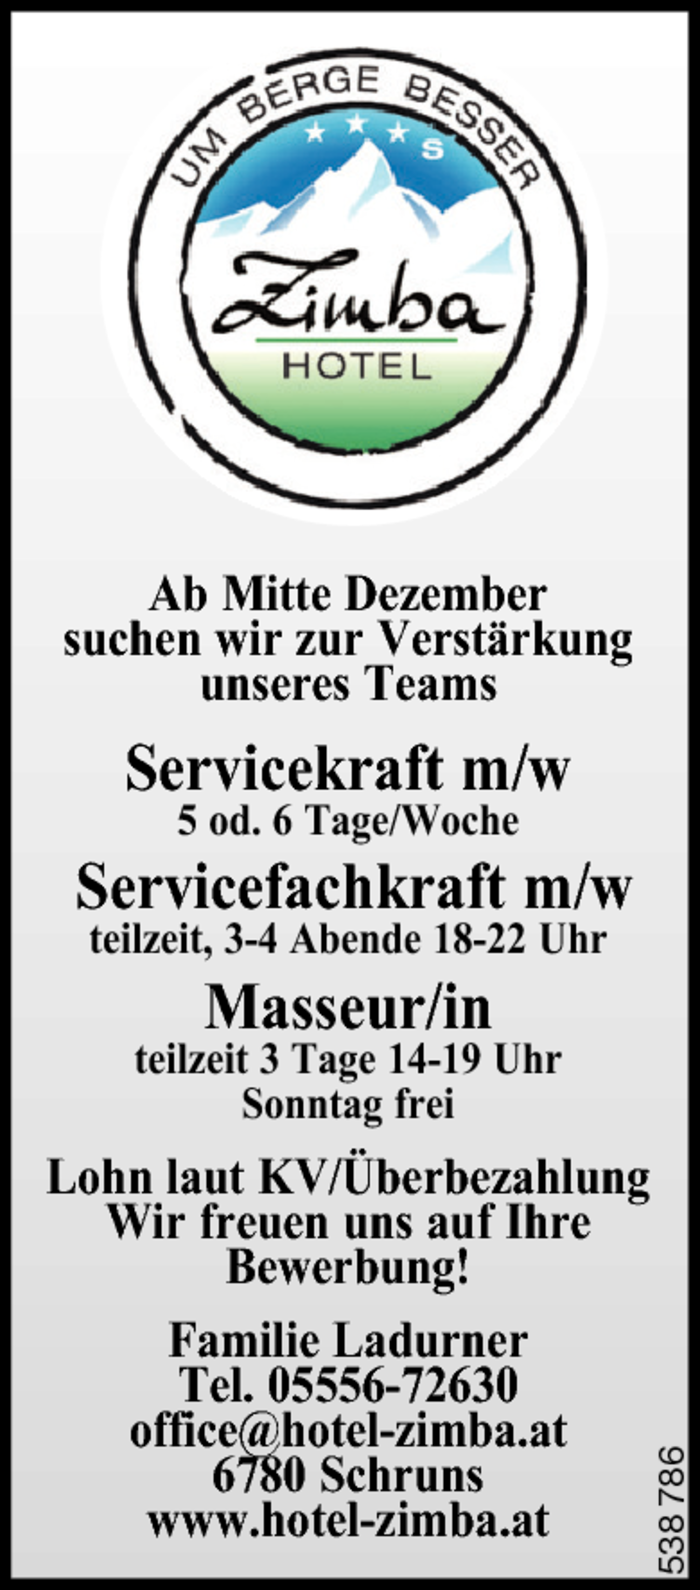 Servicekraft, Masseur/in